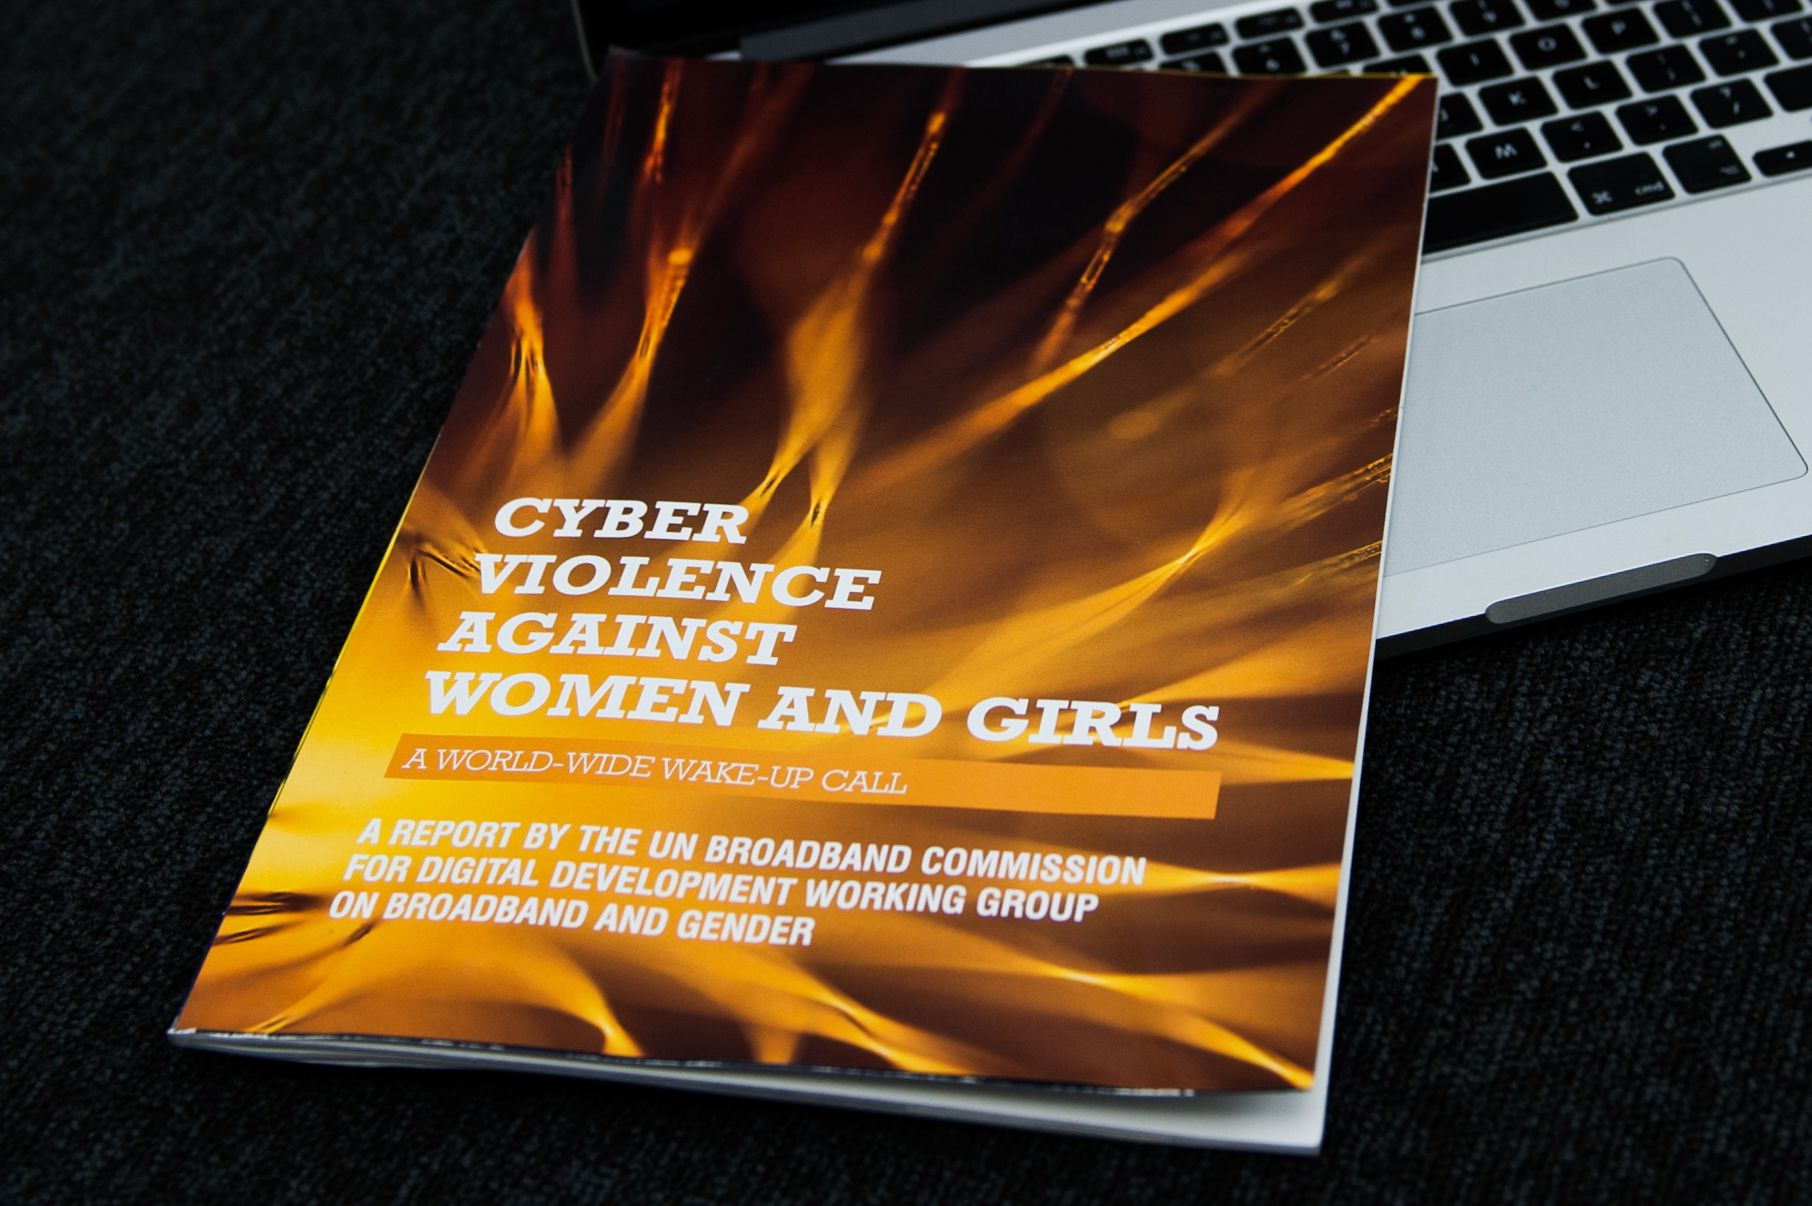 cyber violence_Anita Sarkeesian, Zoe Quinn and more take aim at cyber harassment against women in new ...